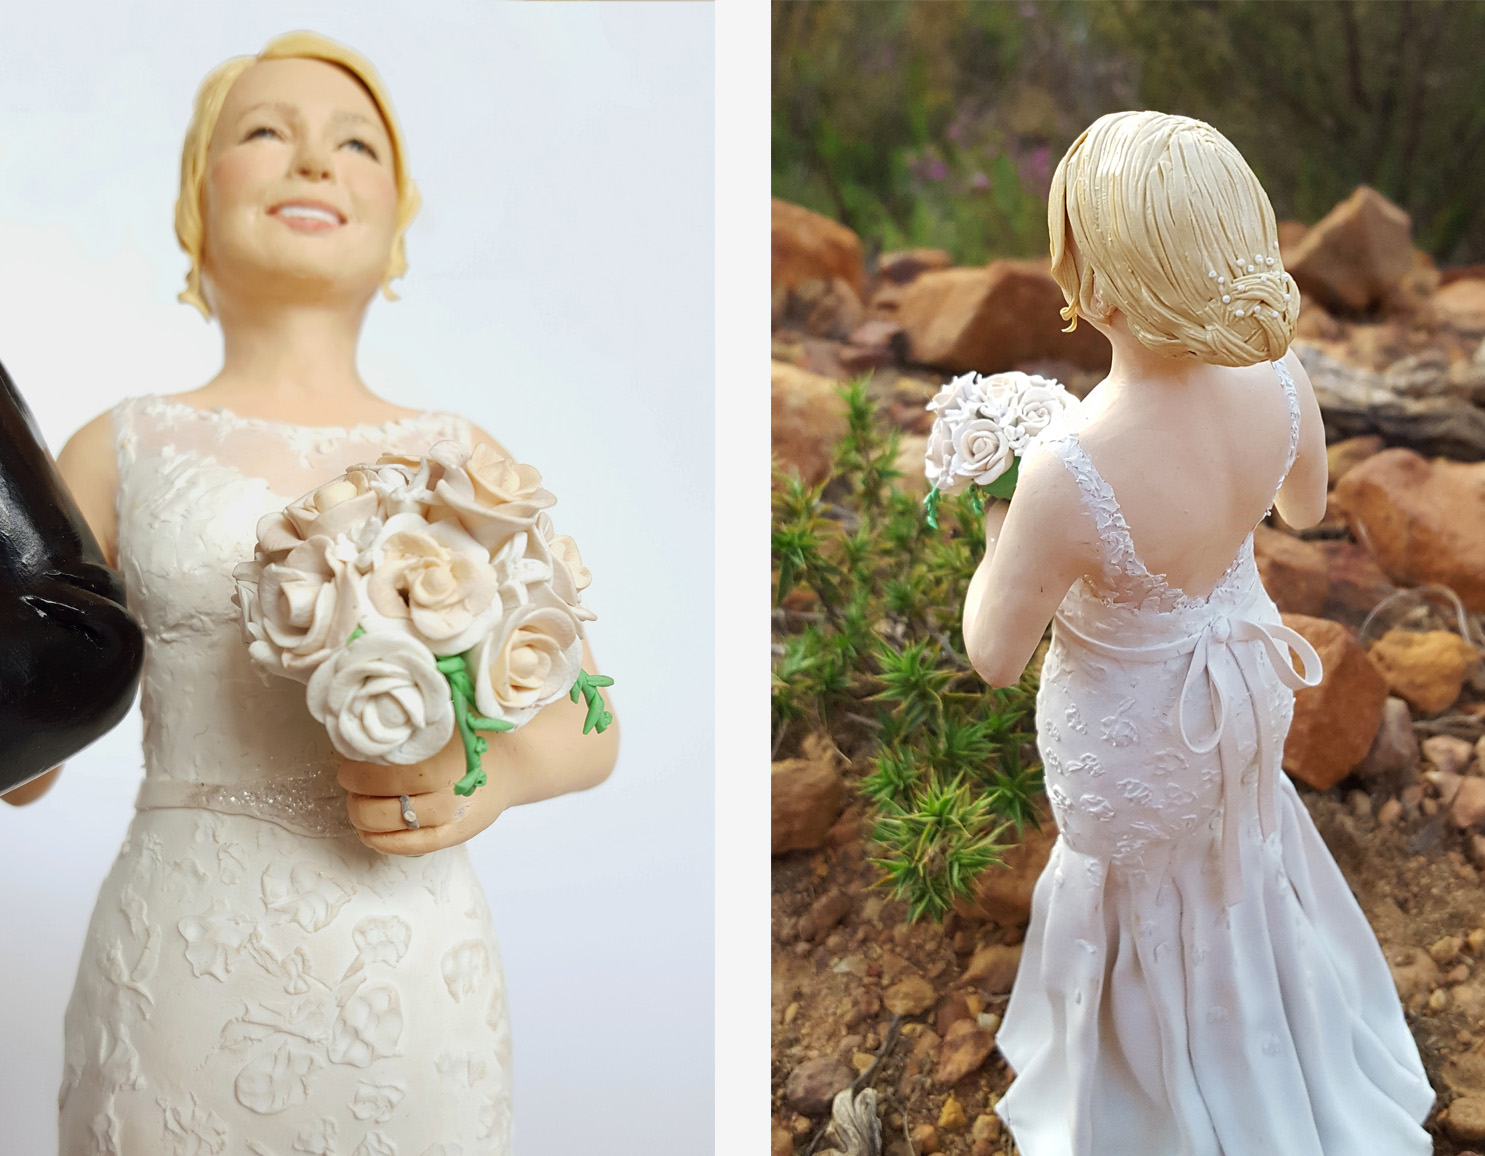 extremely detailed wedding cake topper bride figurine